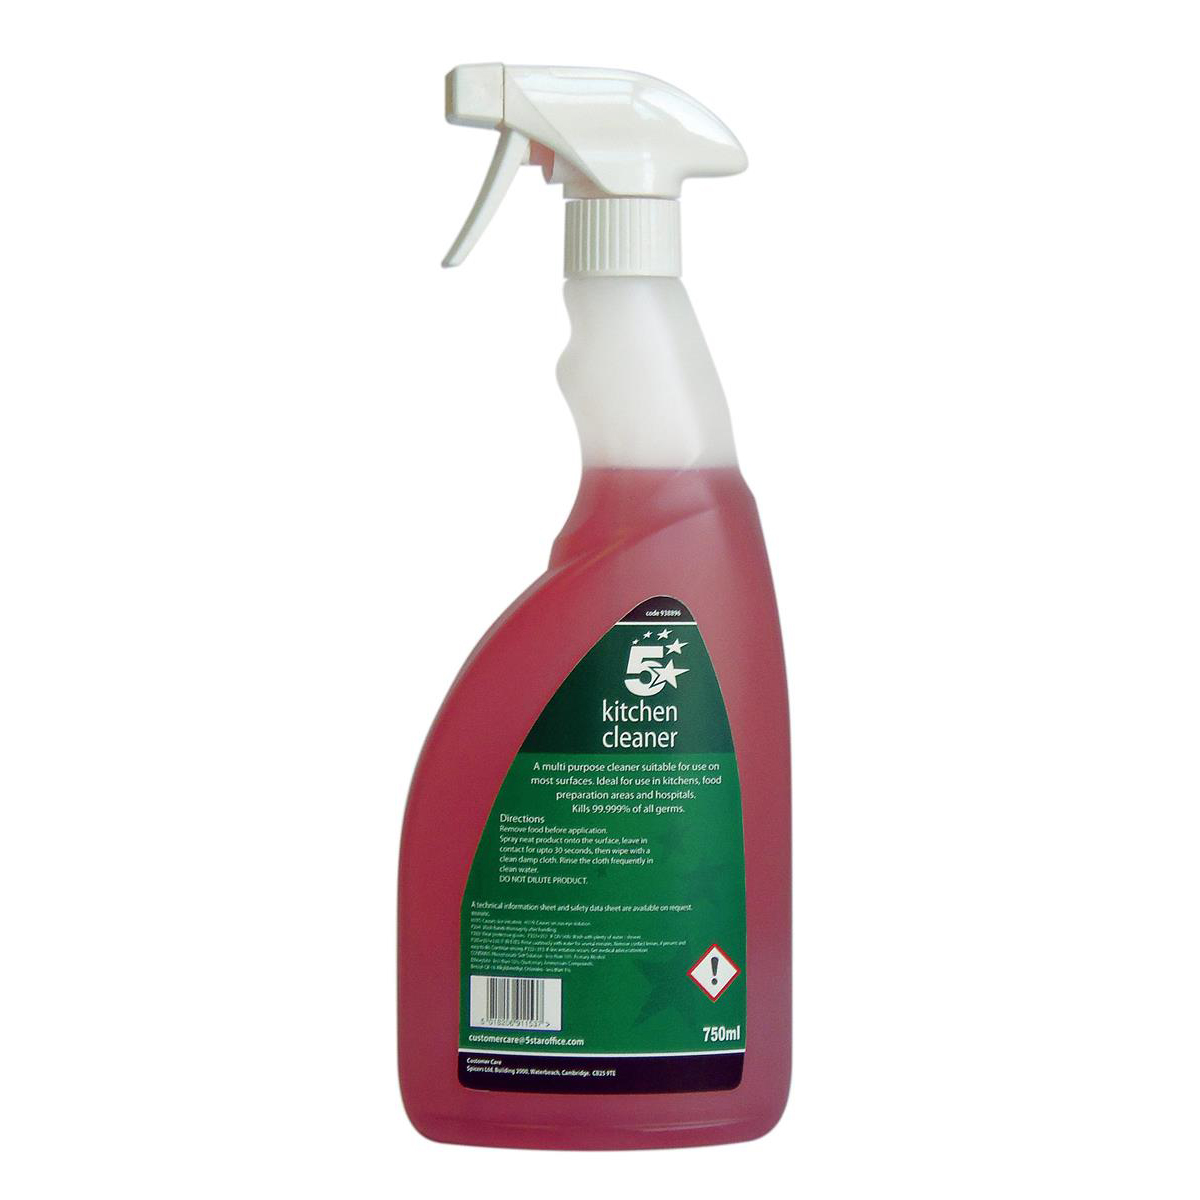 Cleaning Chemicals 5 Star Facilities Kitchen Cleaner 750ml